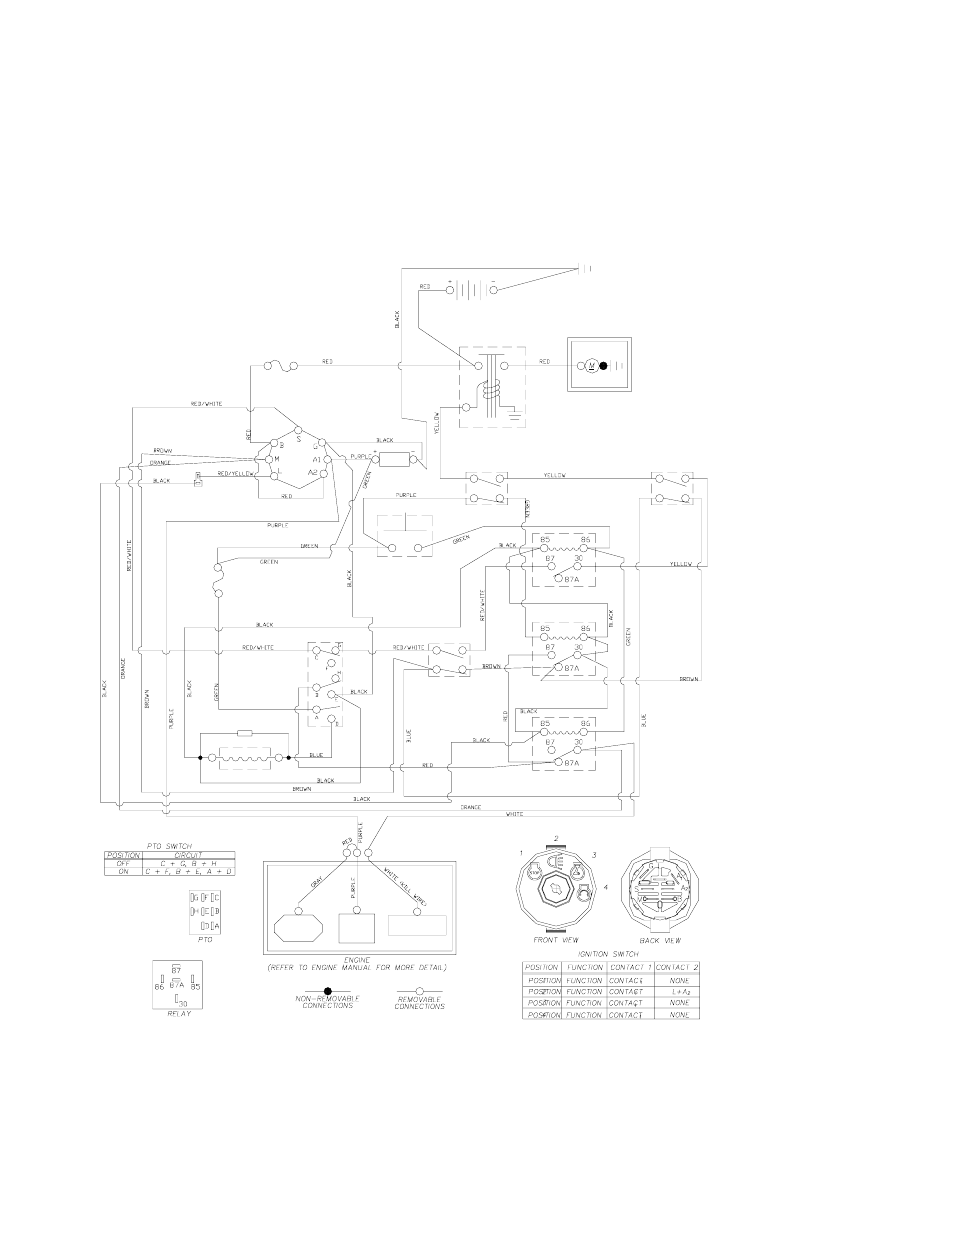 hight resolution of wiring diagram yazoo kees 968999506 user manual page 34 36 yazoo ignition switch wiring diagram